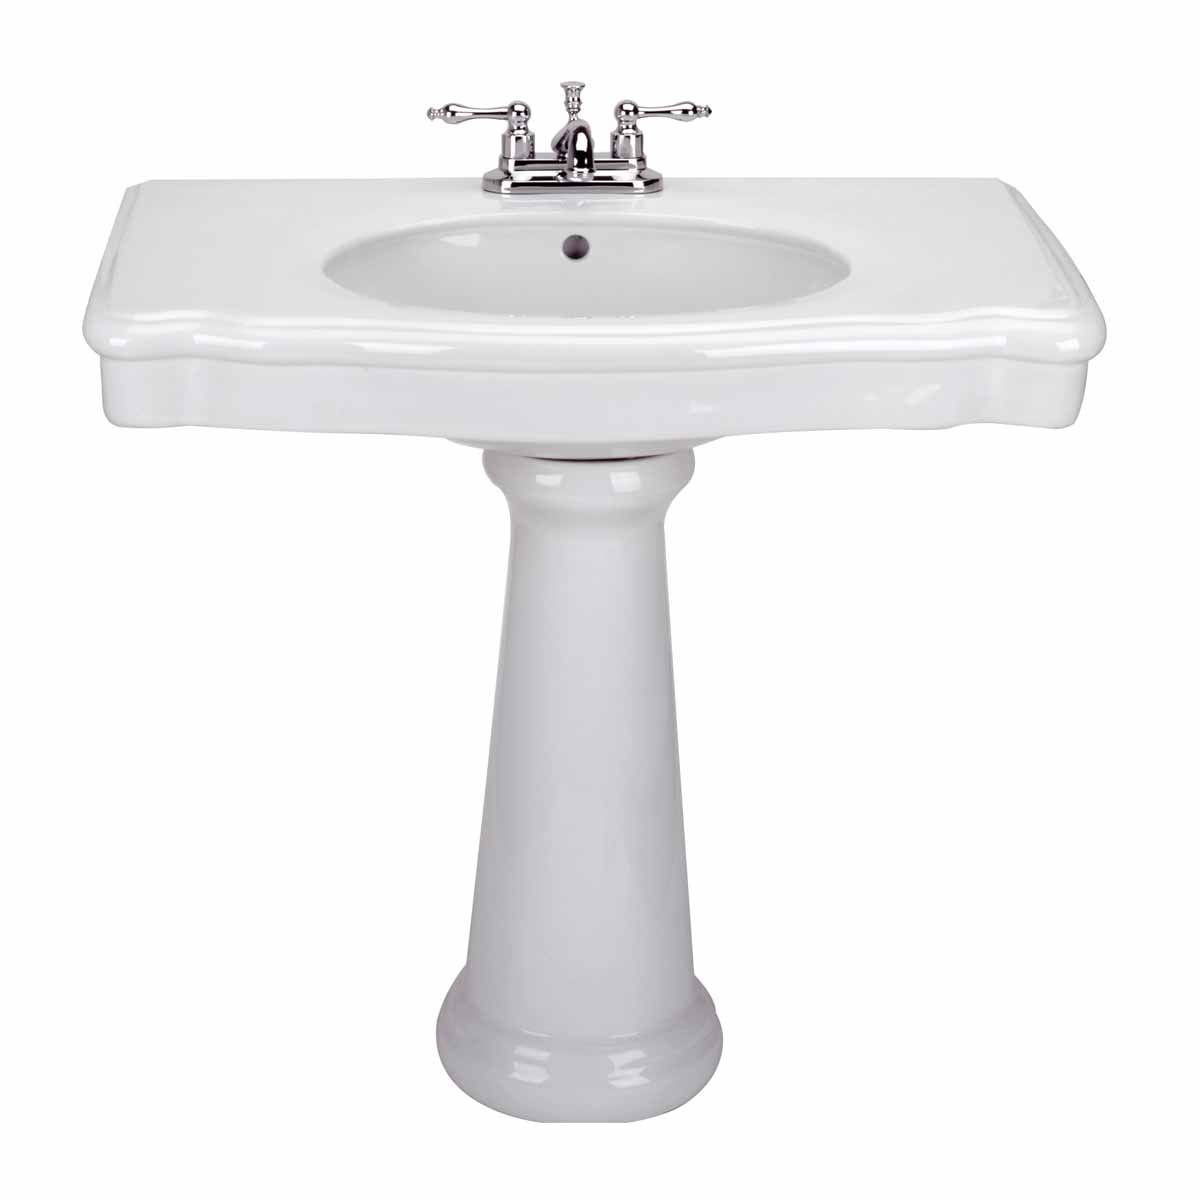 Old Fashioned Pedestal Sink: Old Pedestal Sink Bathroom Console White China Darbyshire